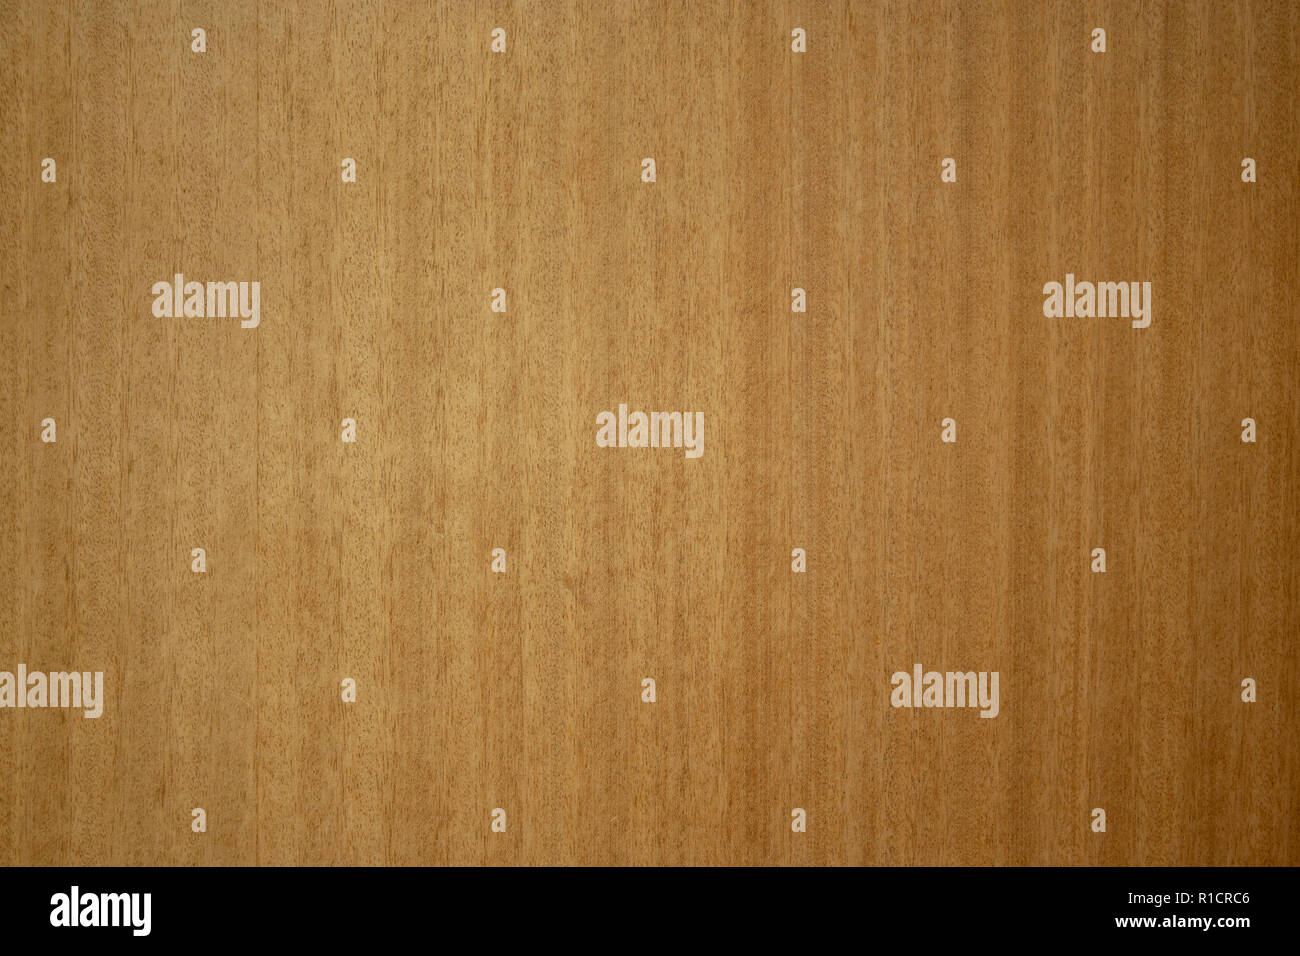 Brown and grain wooden table texture background - Stock Image